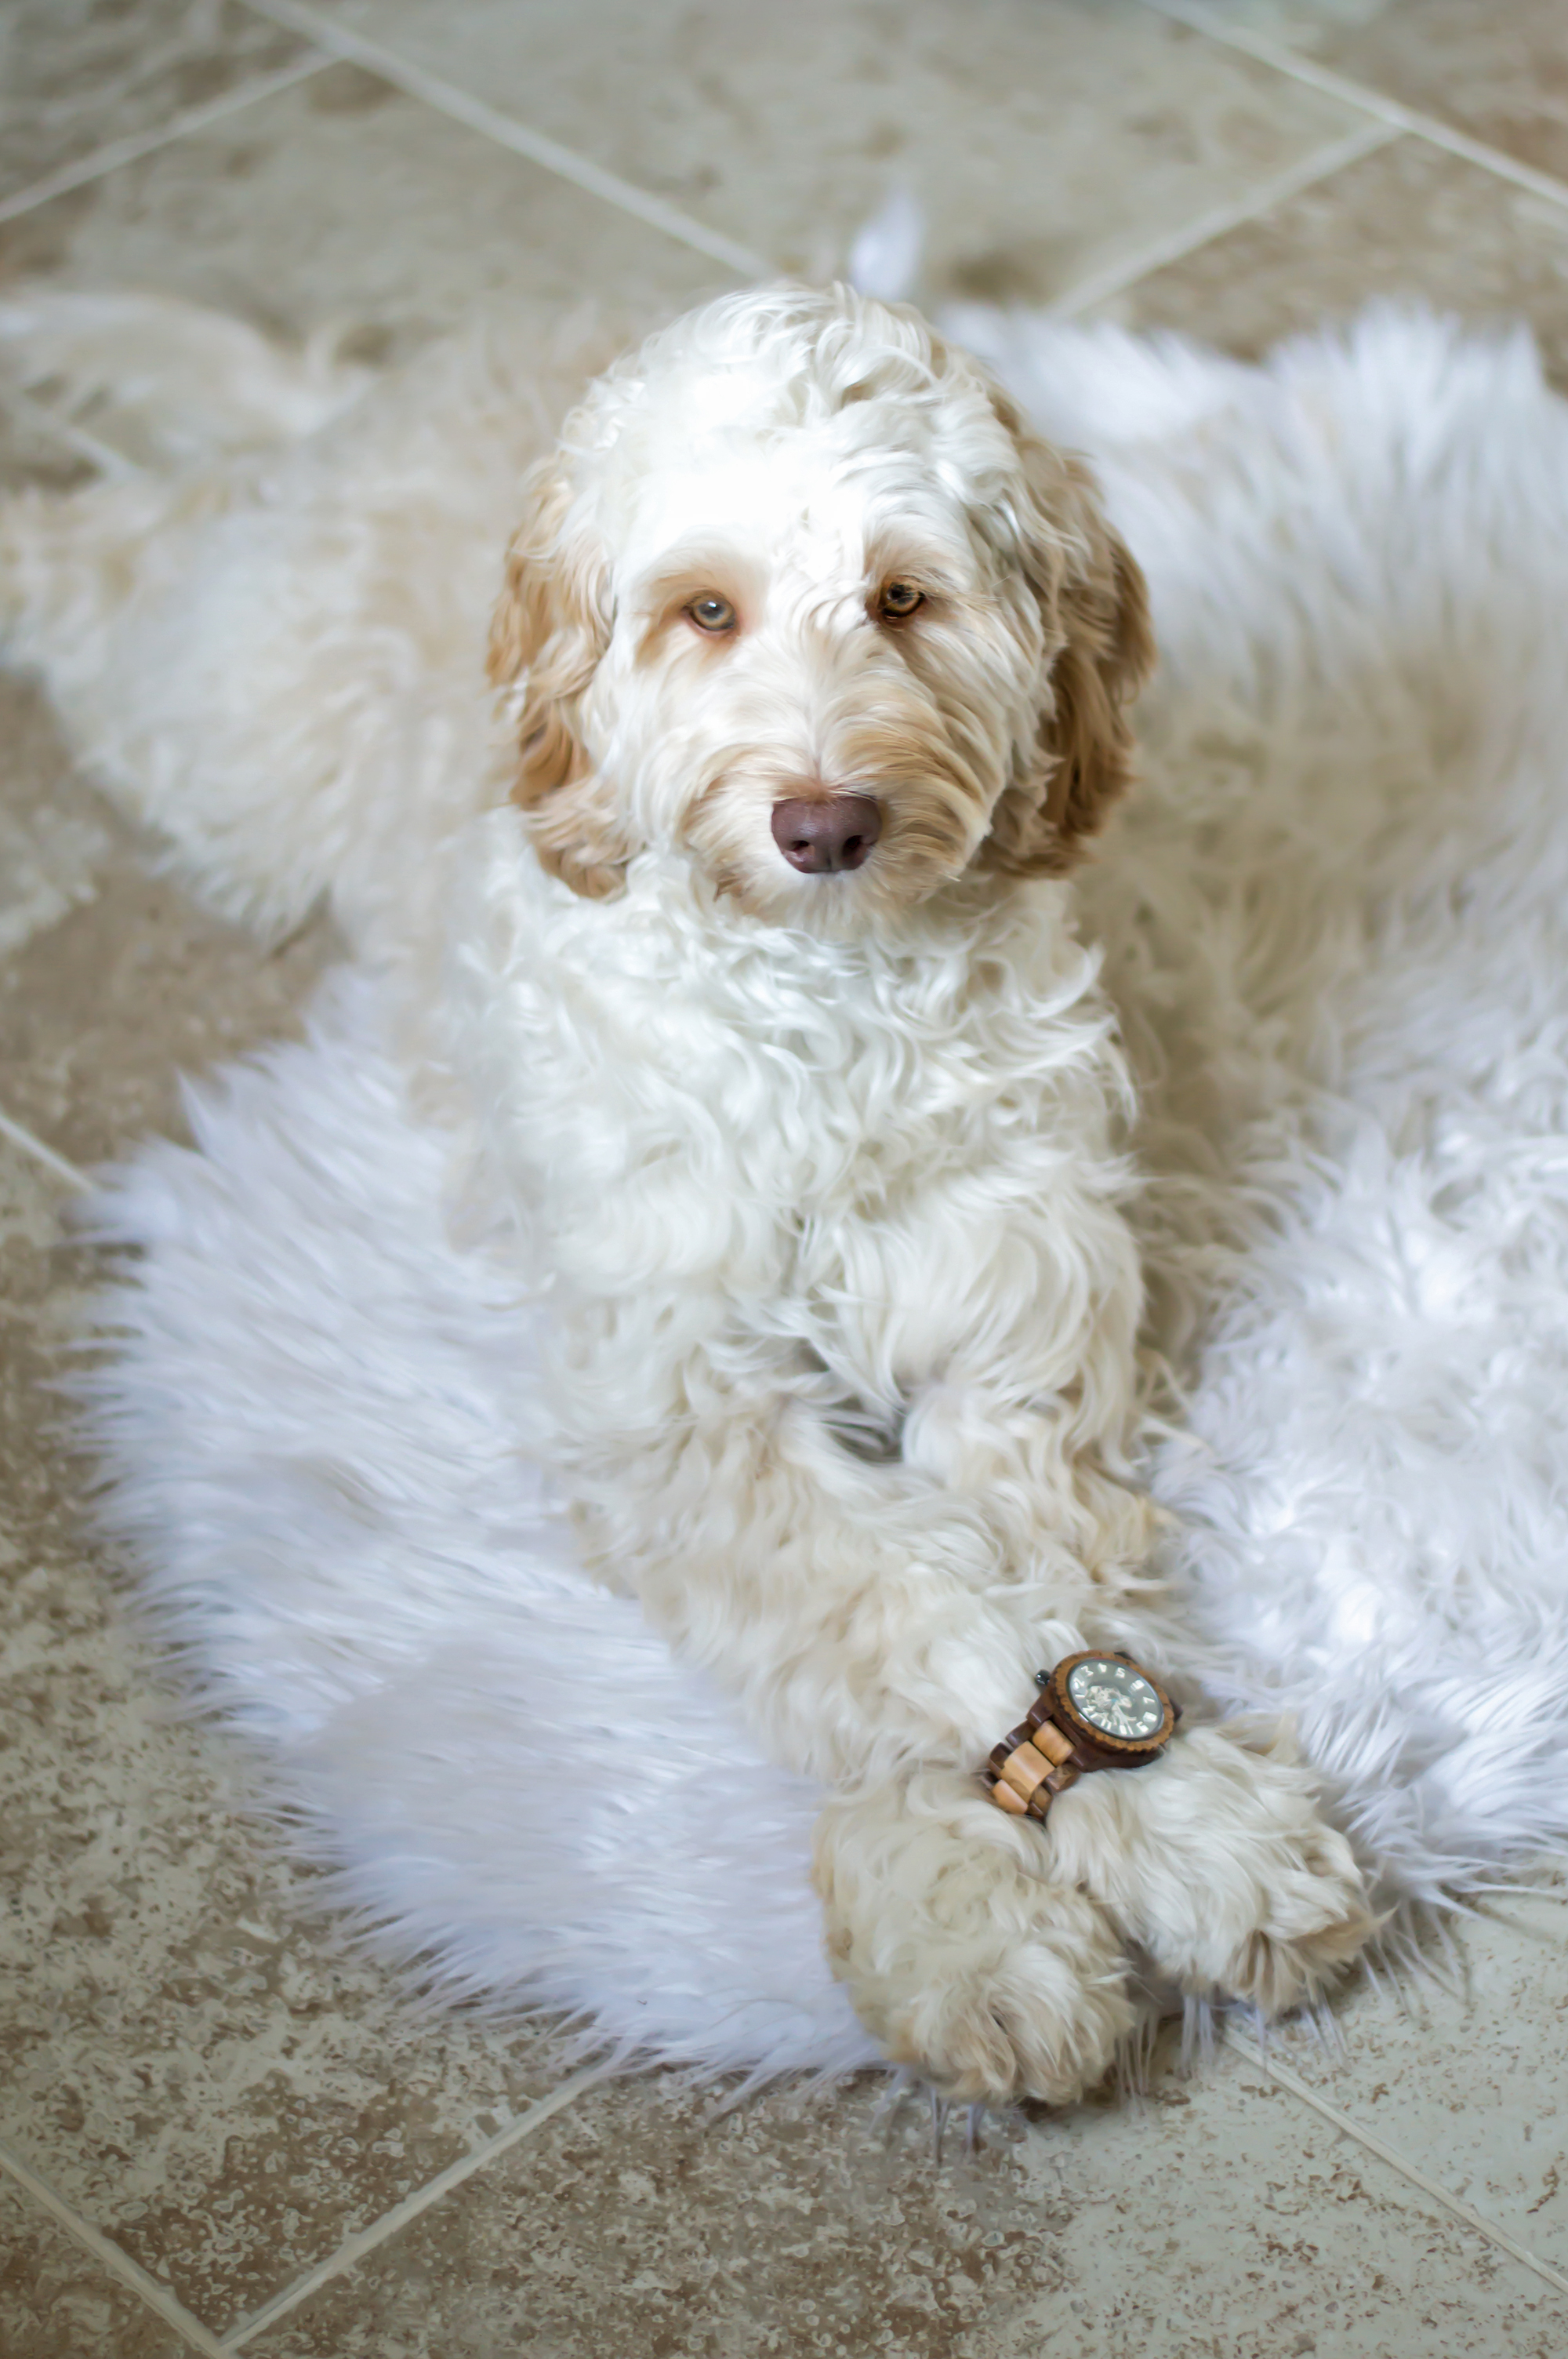 styelled-elle-elisabeth-fashion-style-blogger-jord-wood-watches-luxury-watch-dover-series-valentines-day-for-him-ootd-australian-labradoodle-10